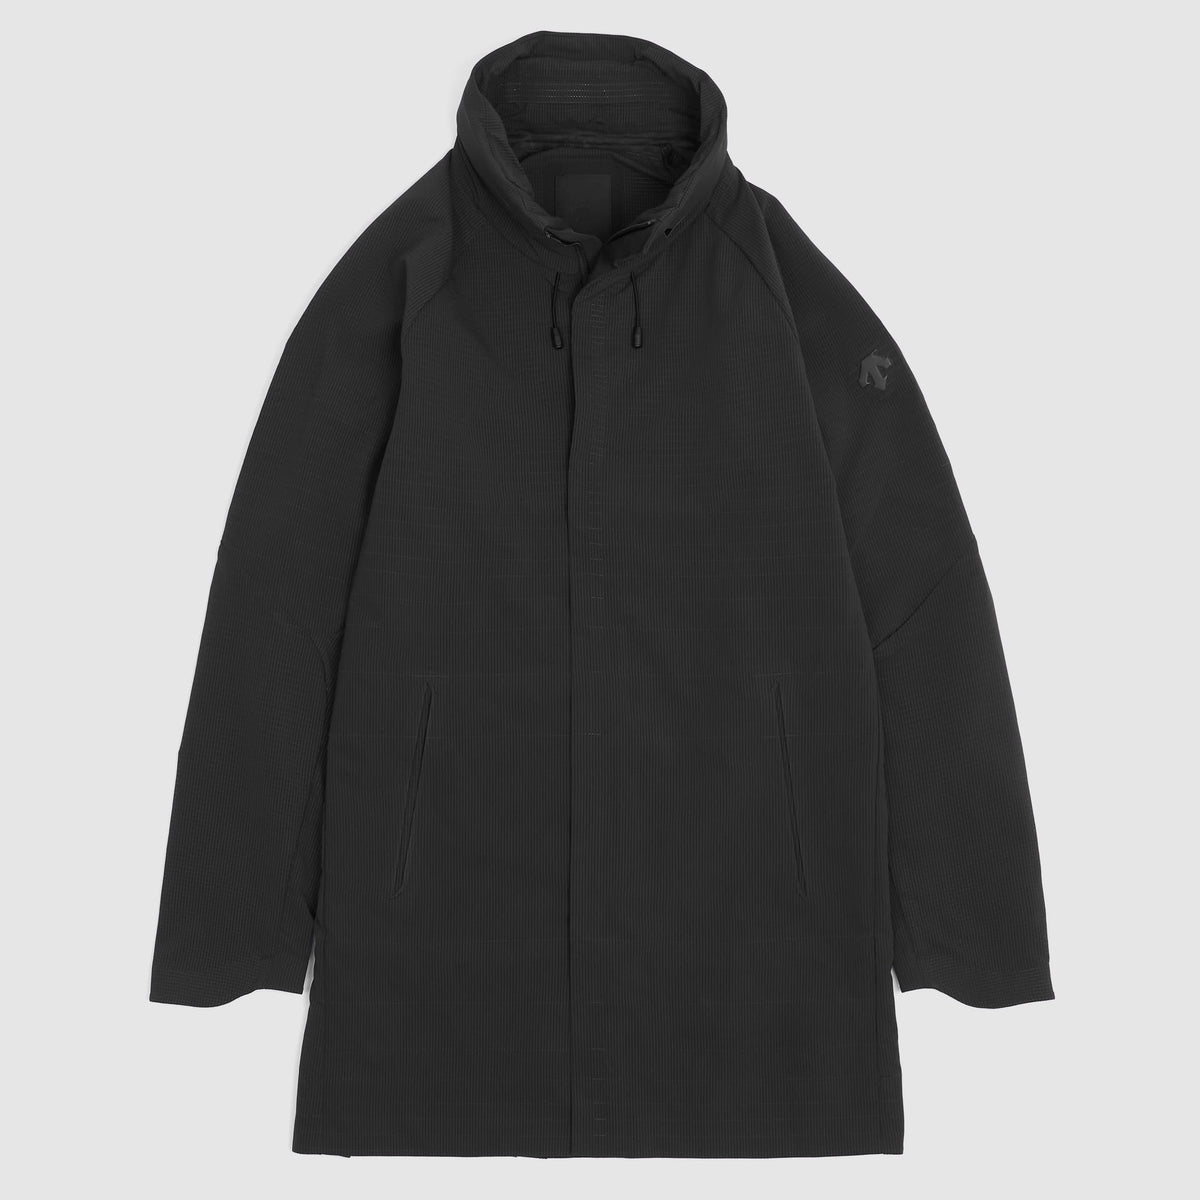 Desencte Allterrain Stack Hooded Coat